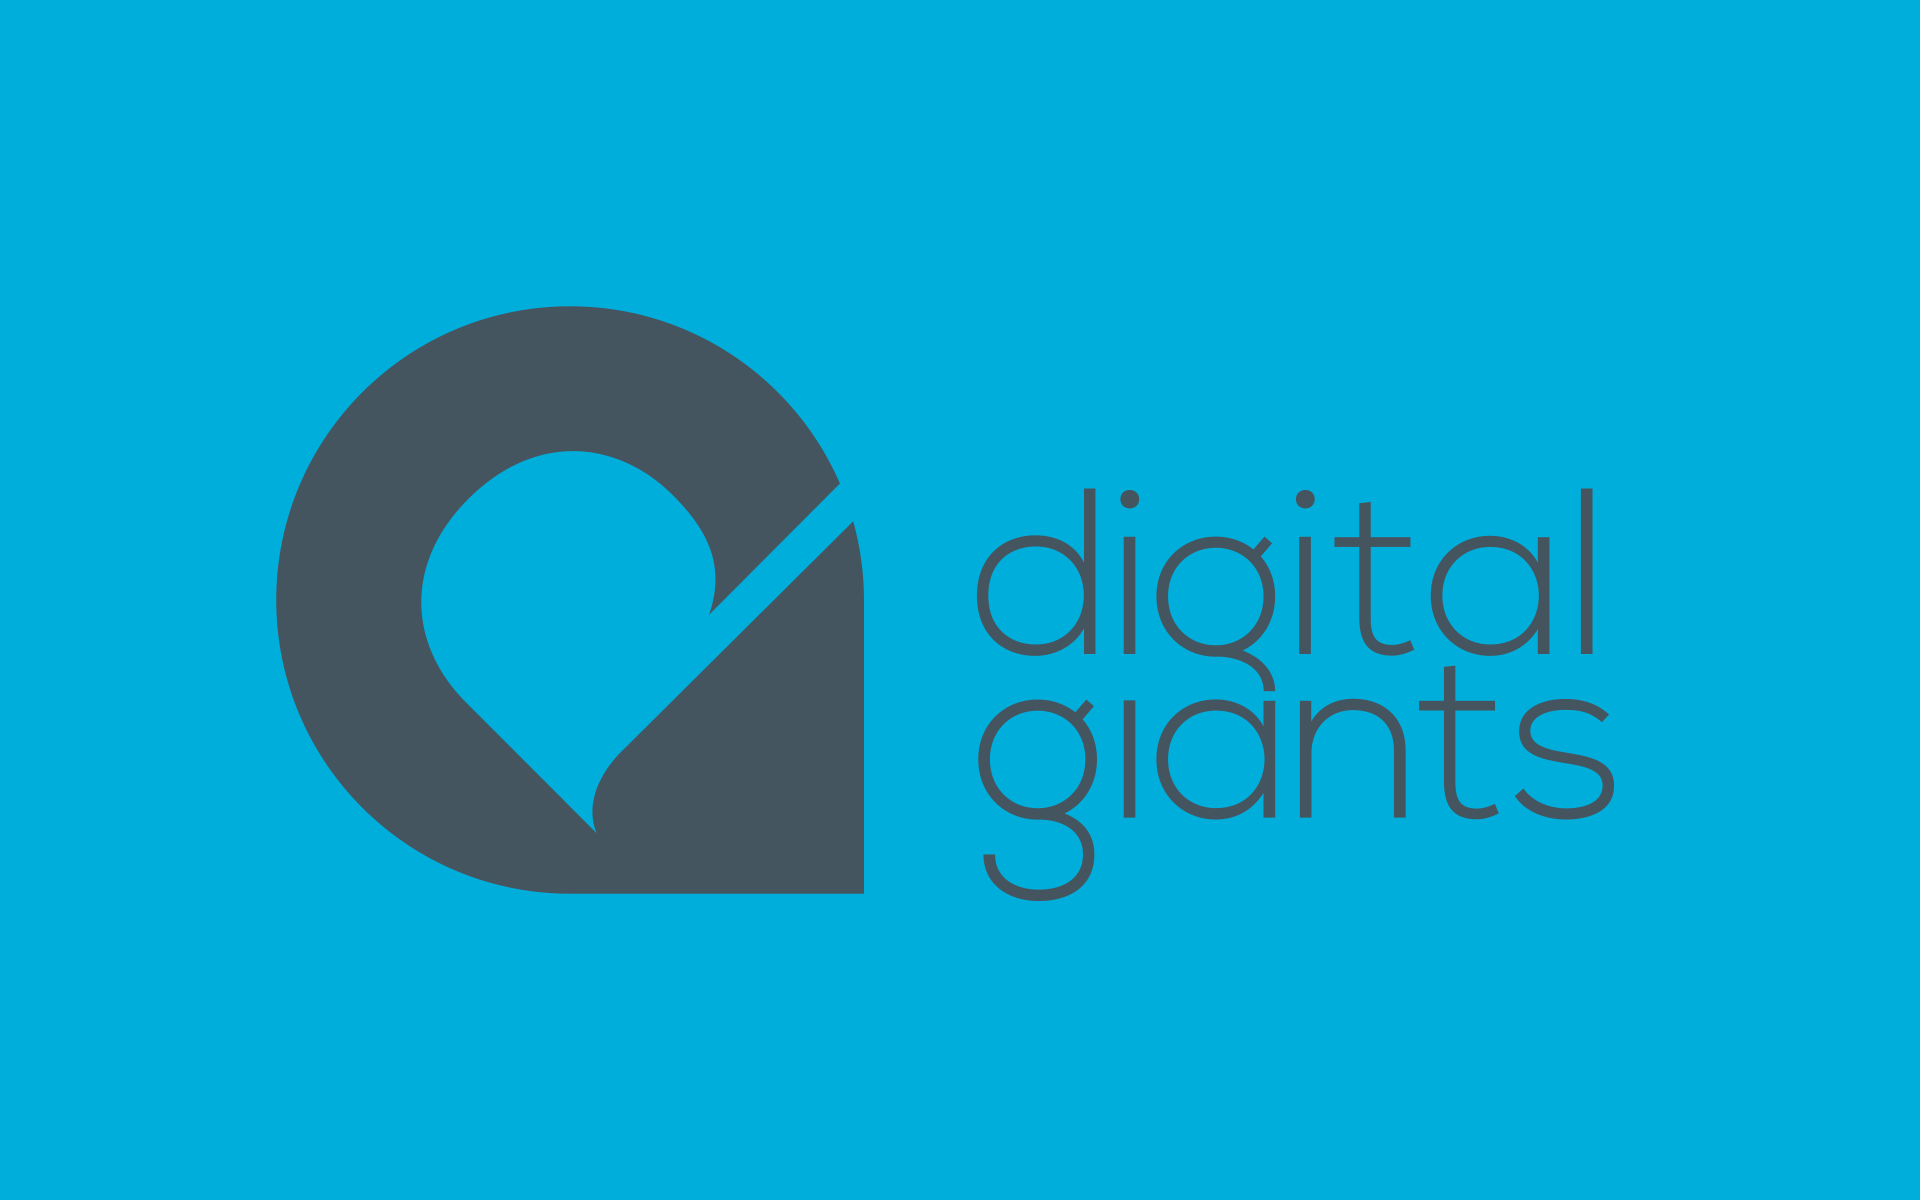 Digital Giants Logo